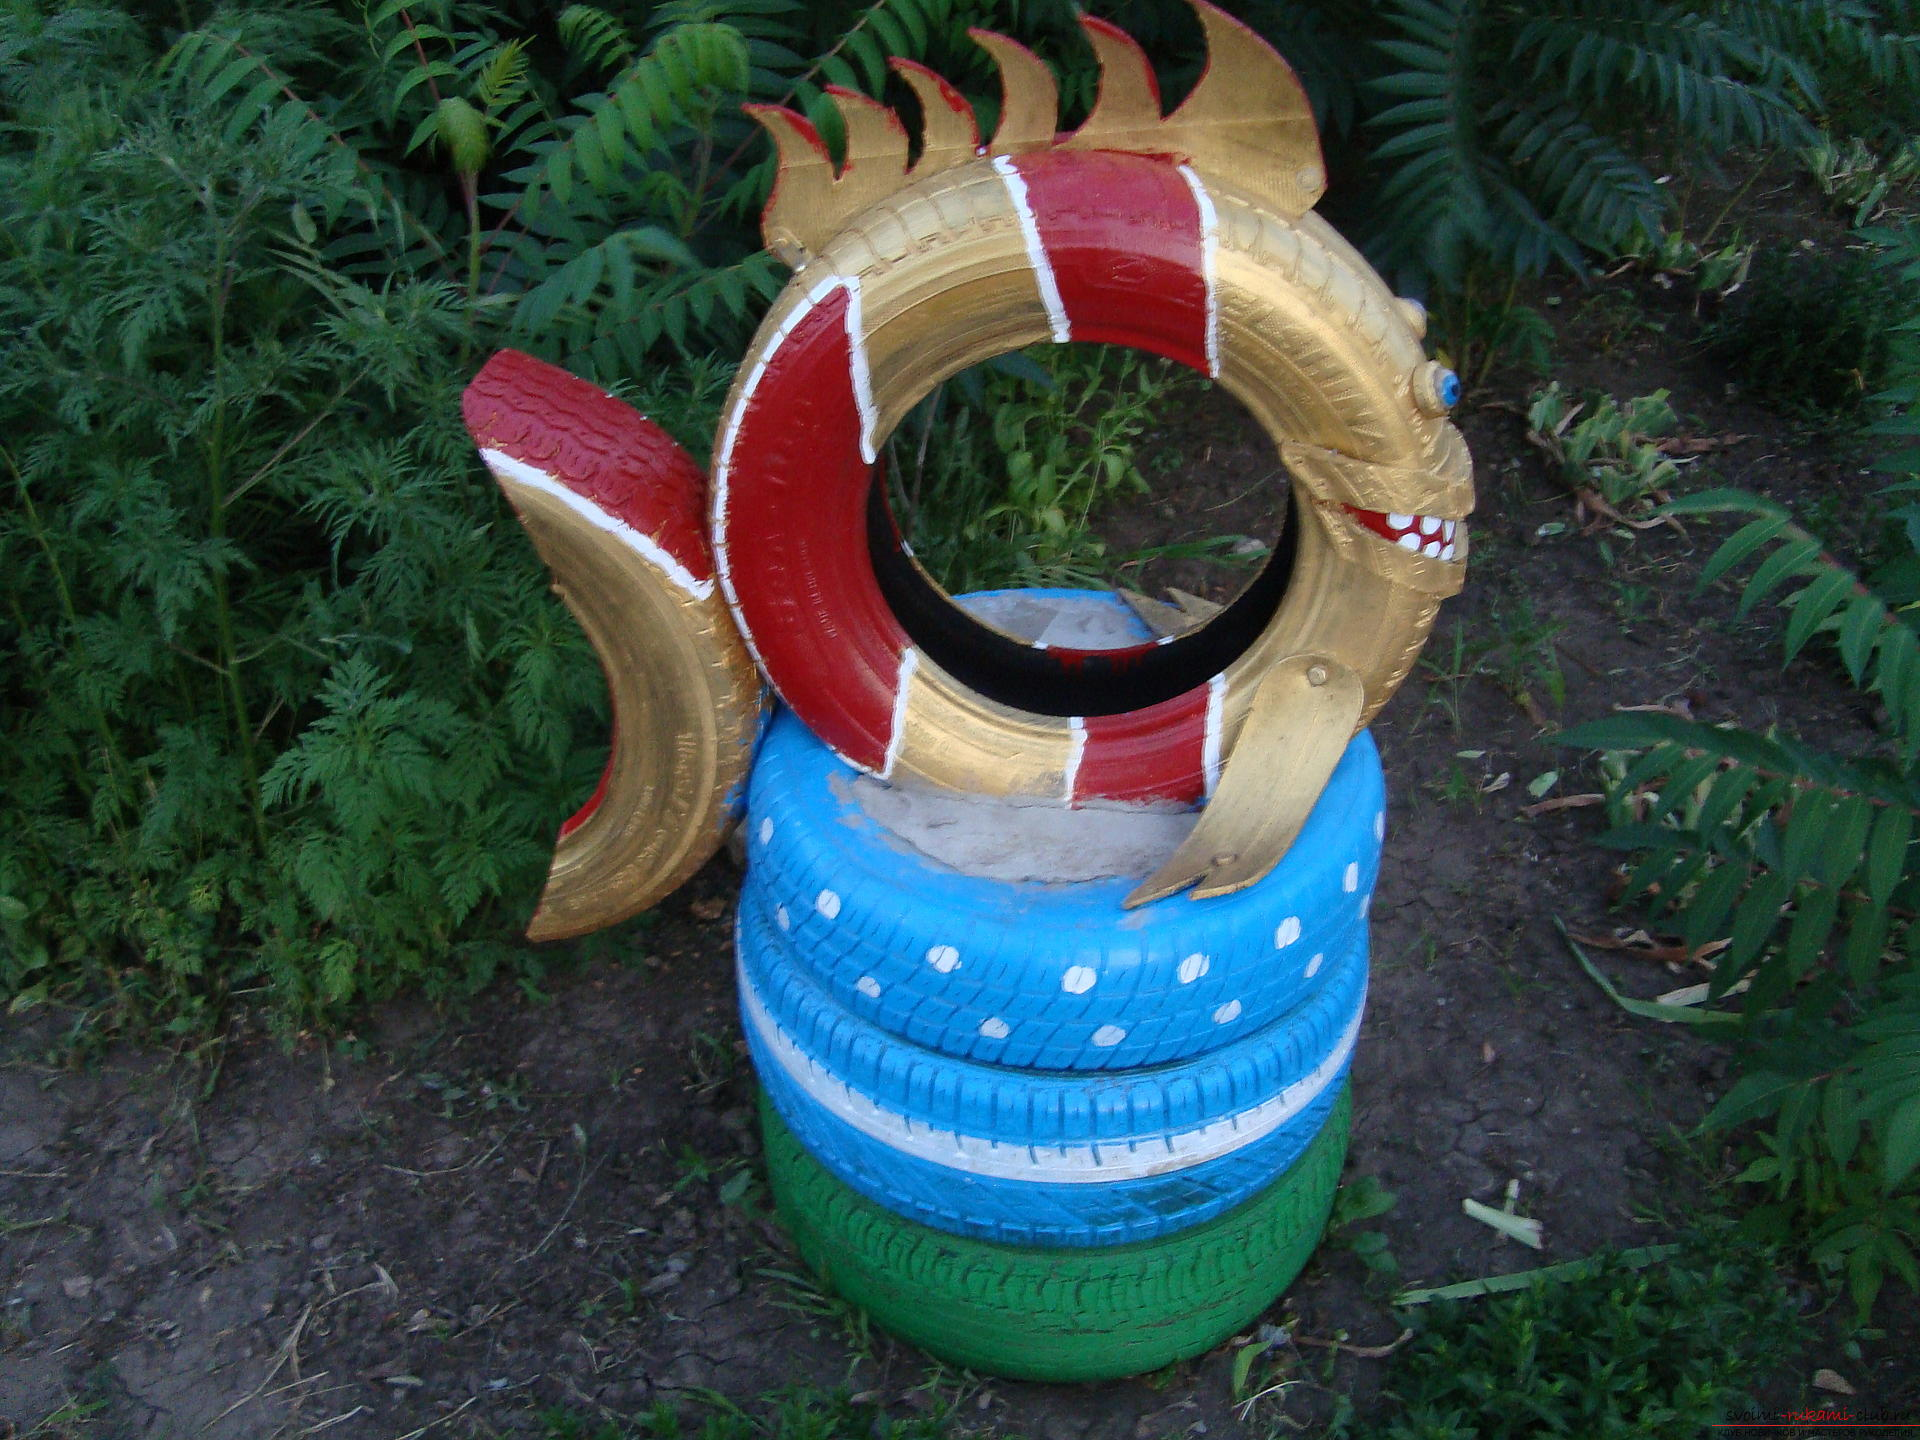 Different crafts made of tires can decorate the yard or playground .. Photo # 9